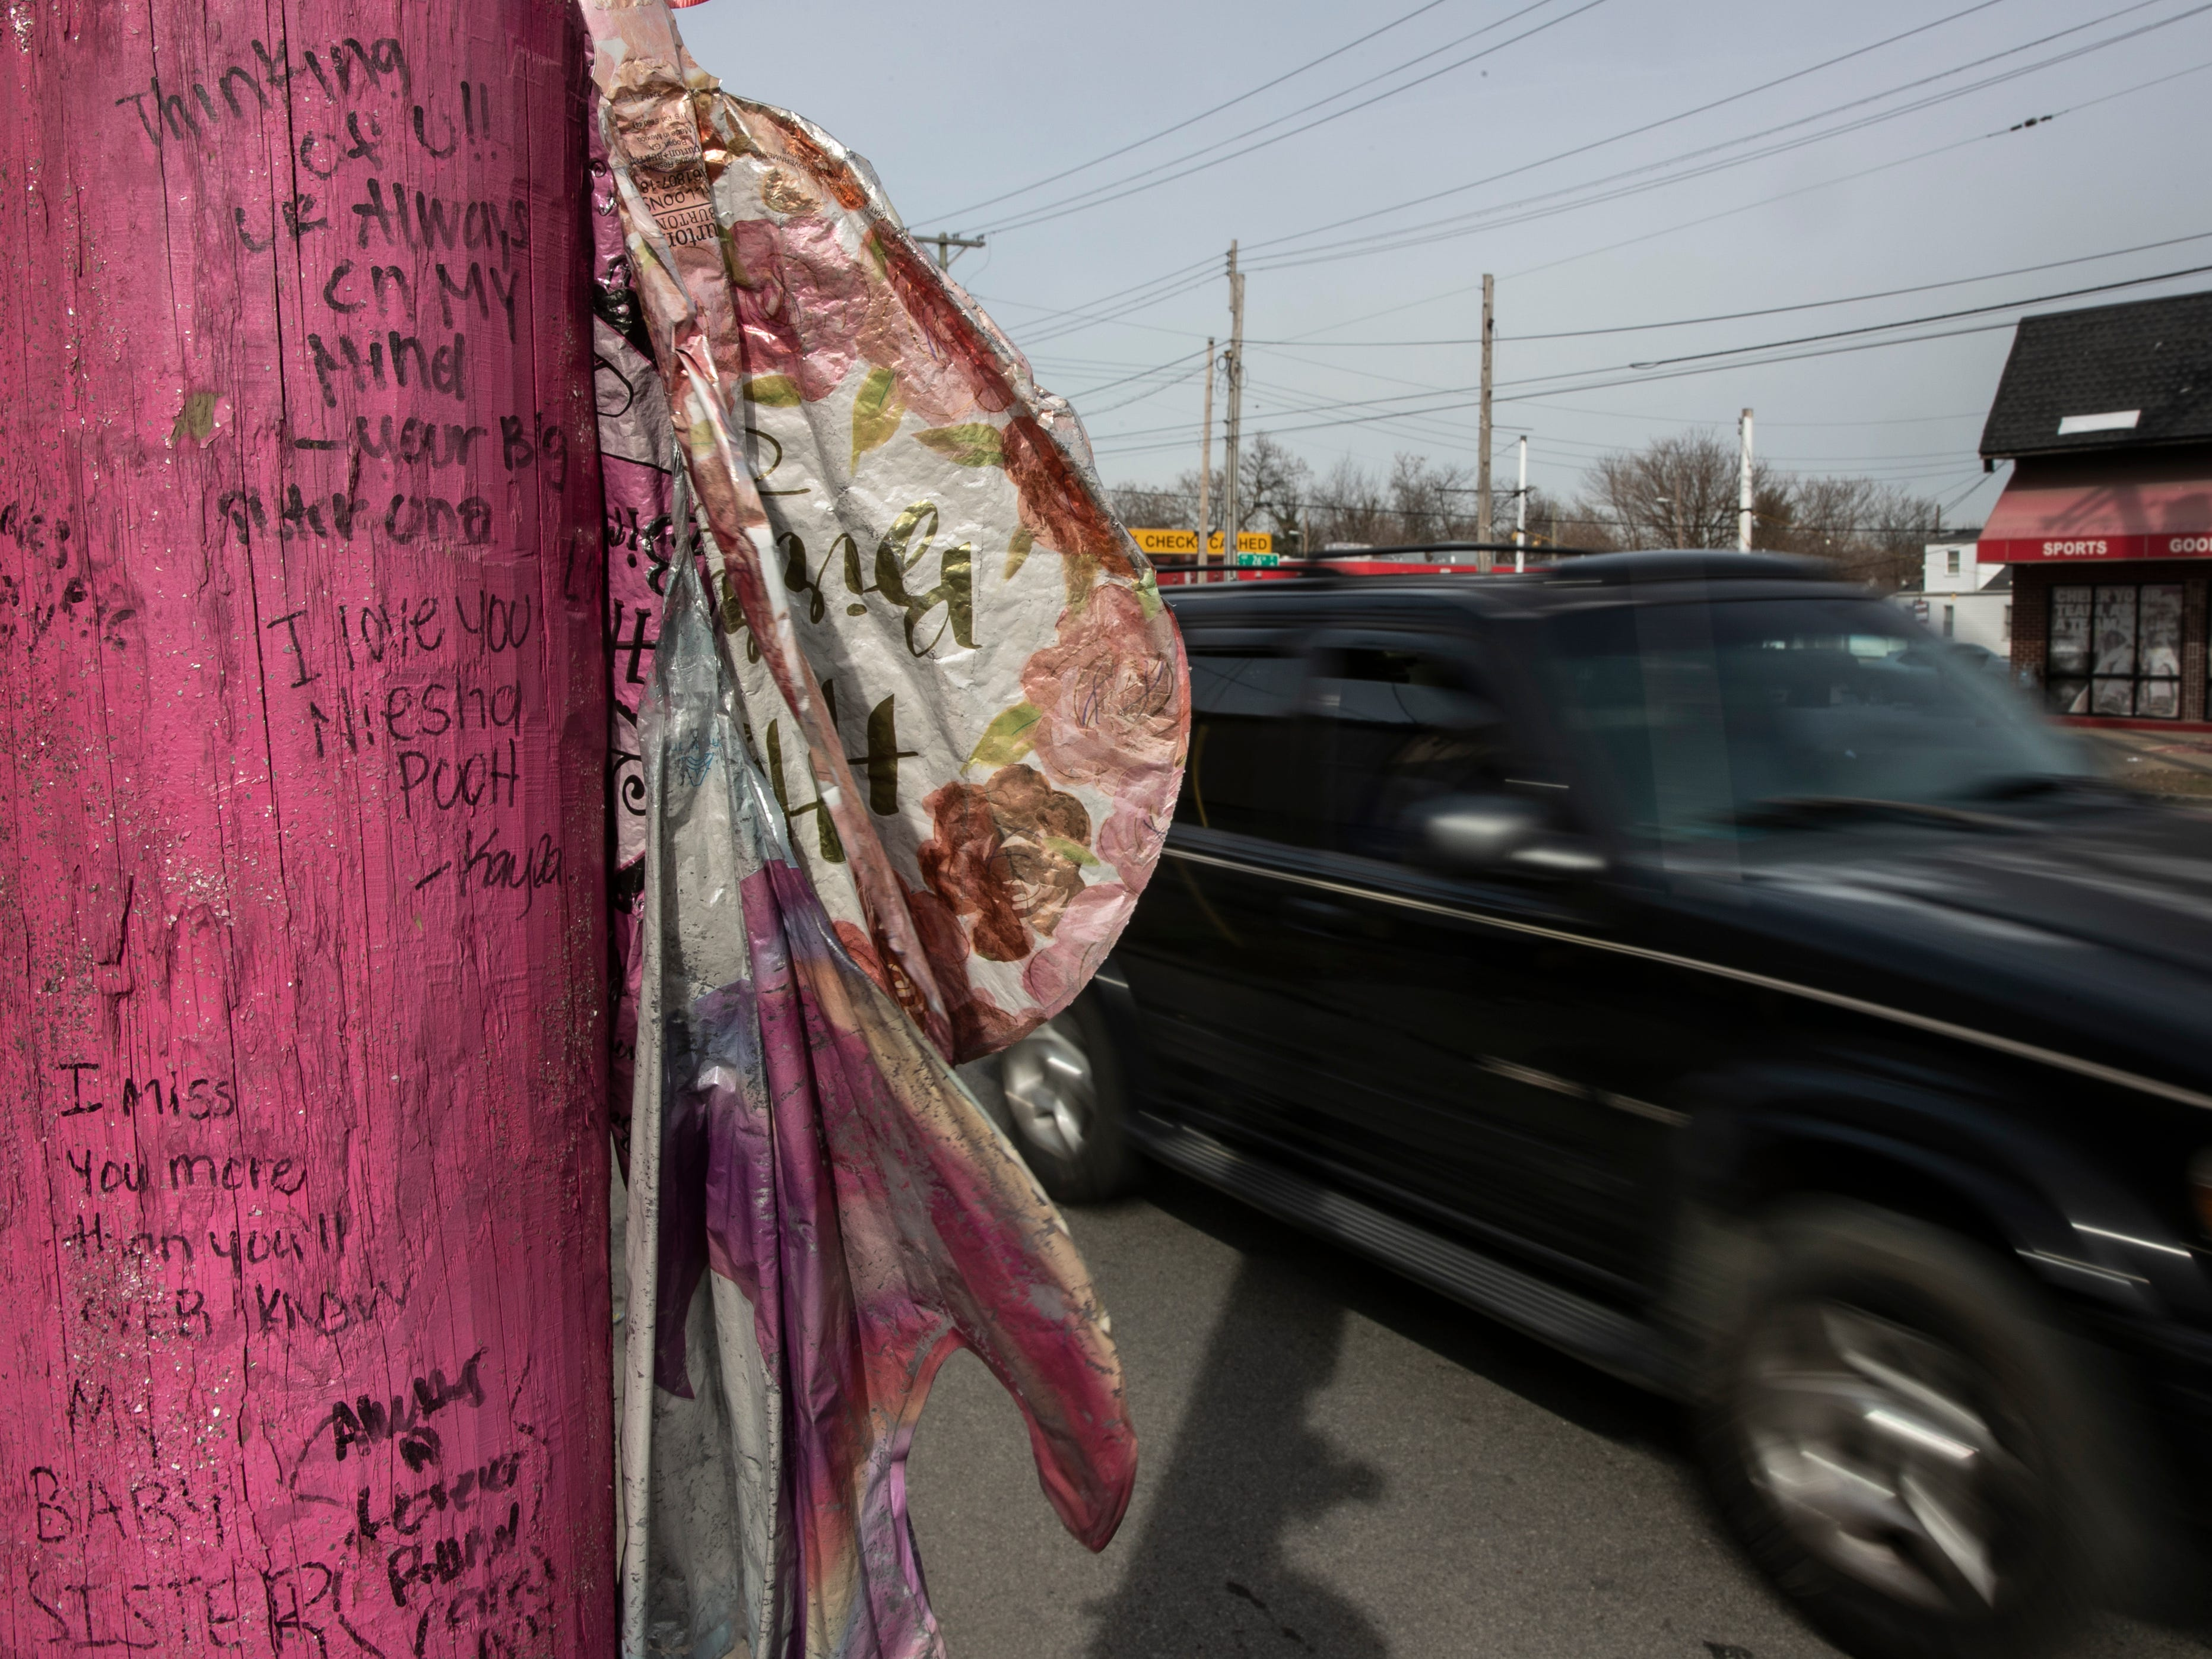 A utility pole was painted pink and adorned with flowers and messages of love on this makeshift shrine for Deniesha Pugh, 19, a hit-and-run homicide victim at 26th and Broadway, in 2015. March 12, 2019